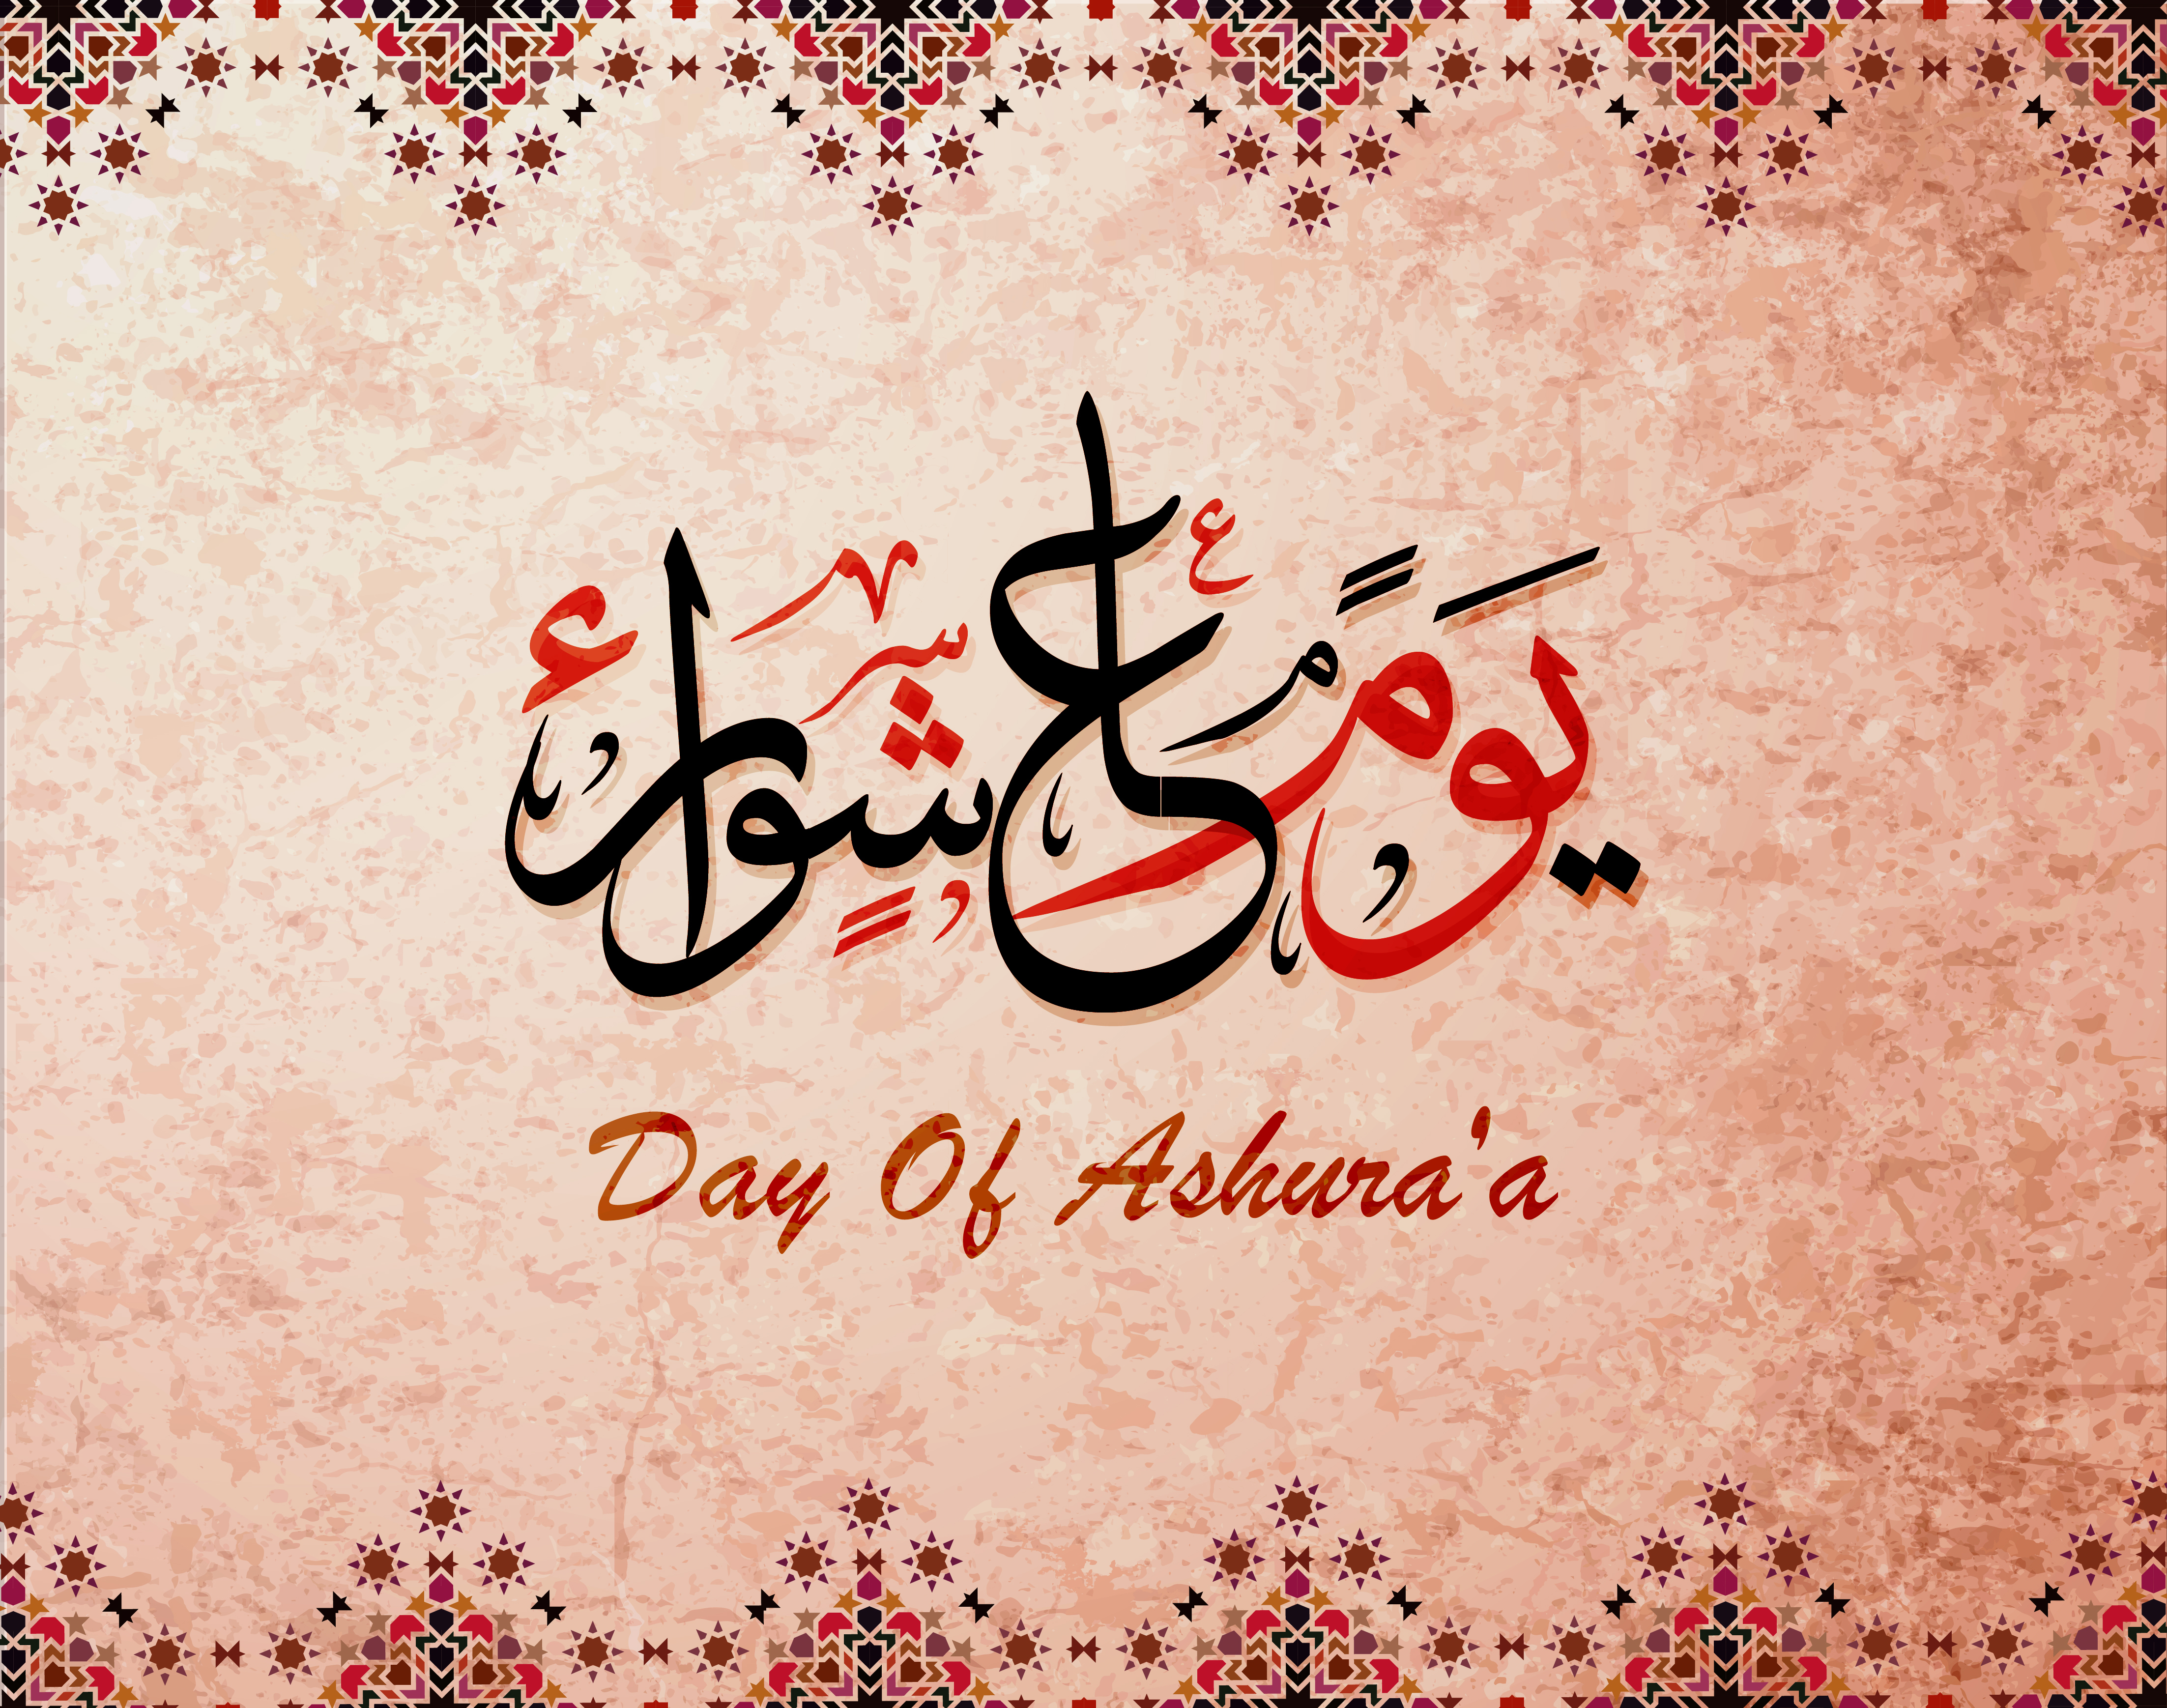 What-Are-the-Virtues-of-the-Day-Of-Ashura